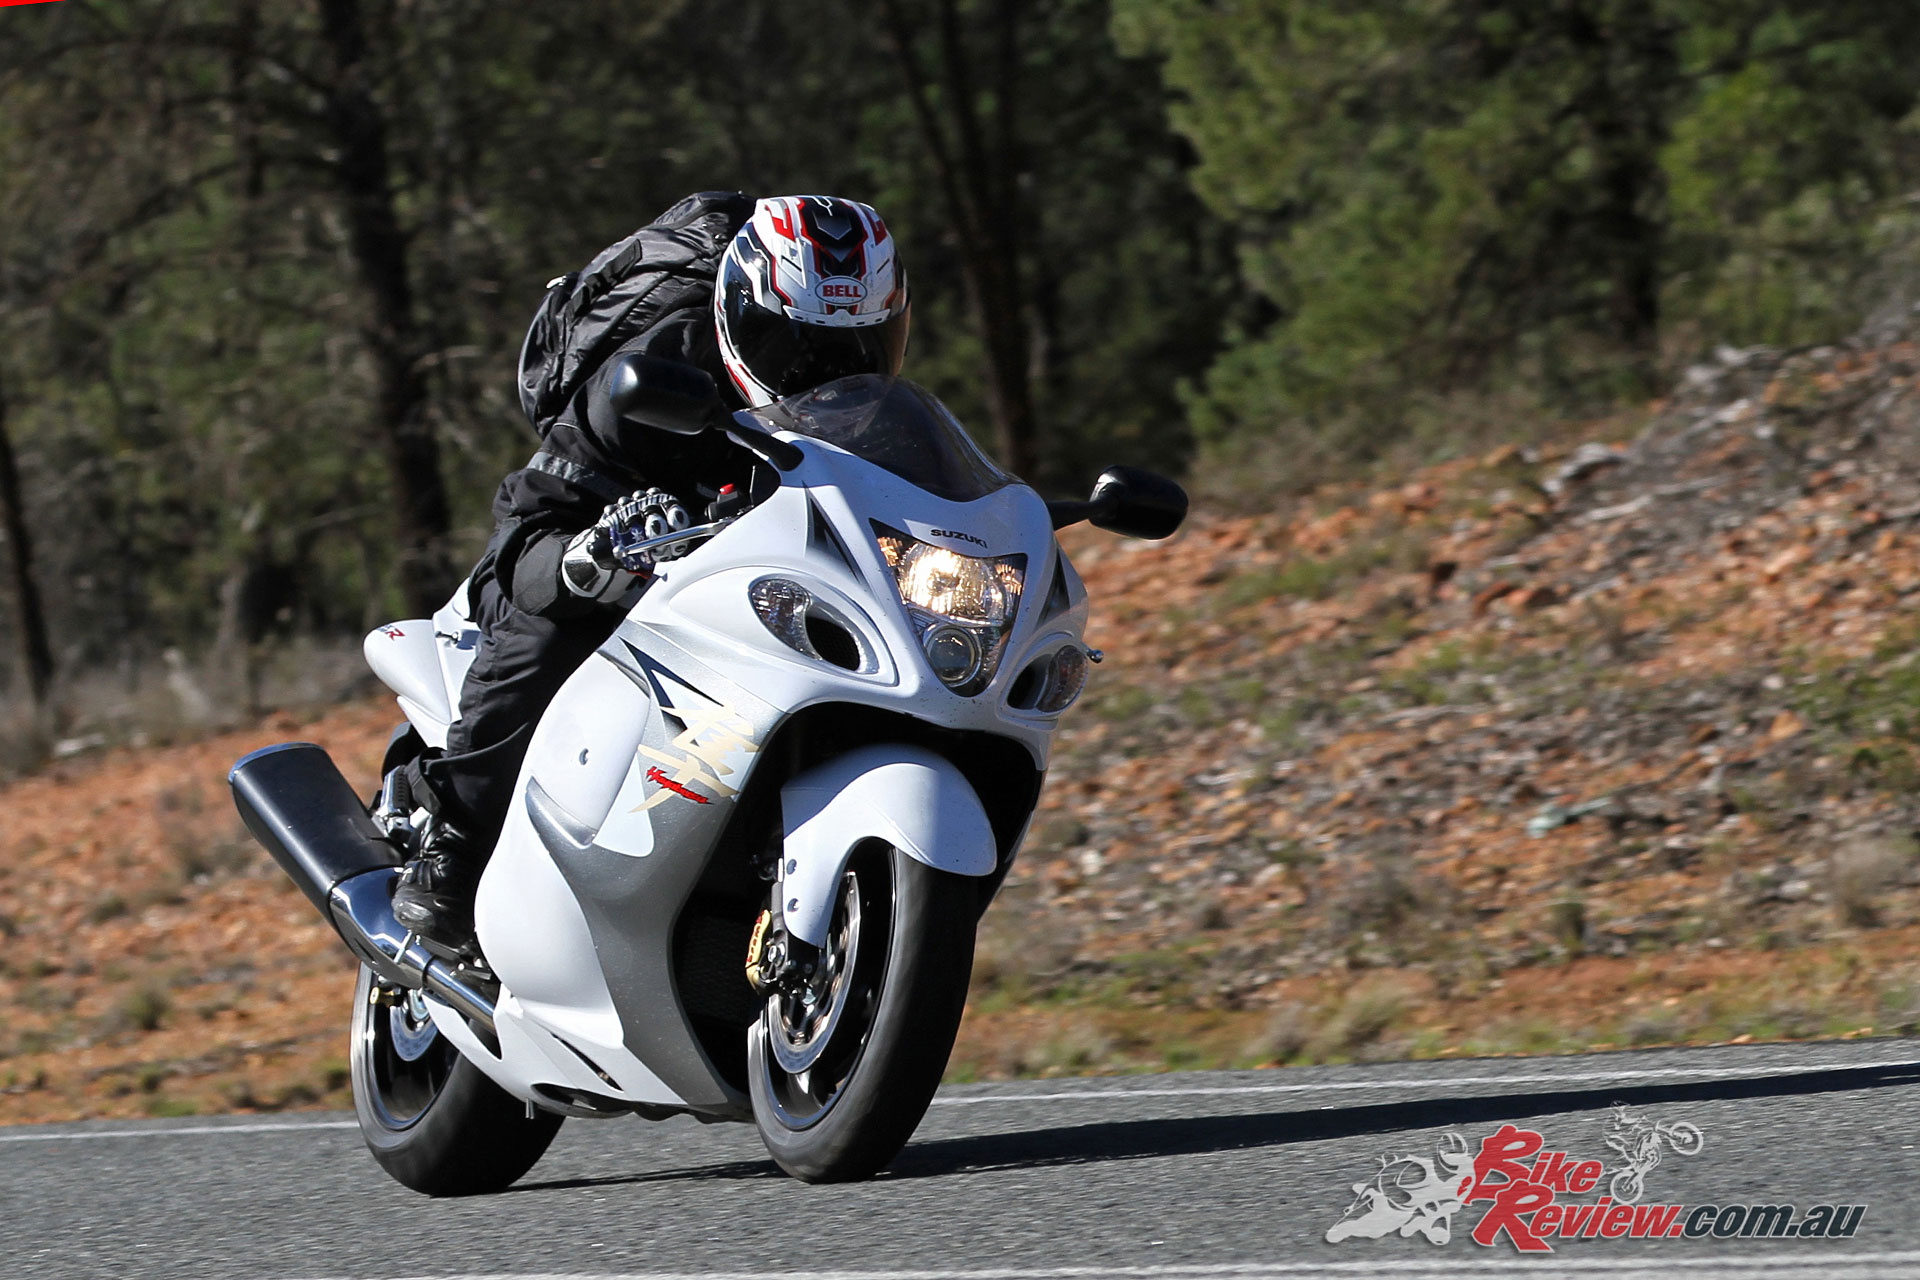 The Hayabusa is particularly famous for being capable of 300km/h+ on early models, before being restricted